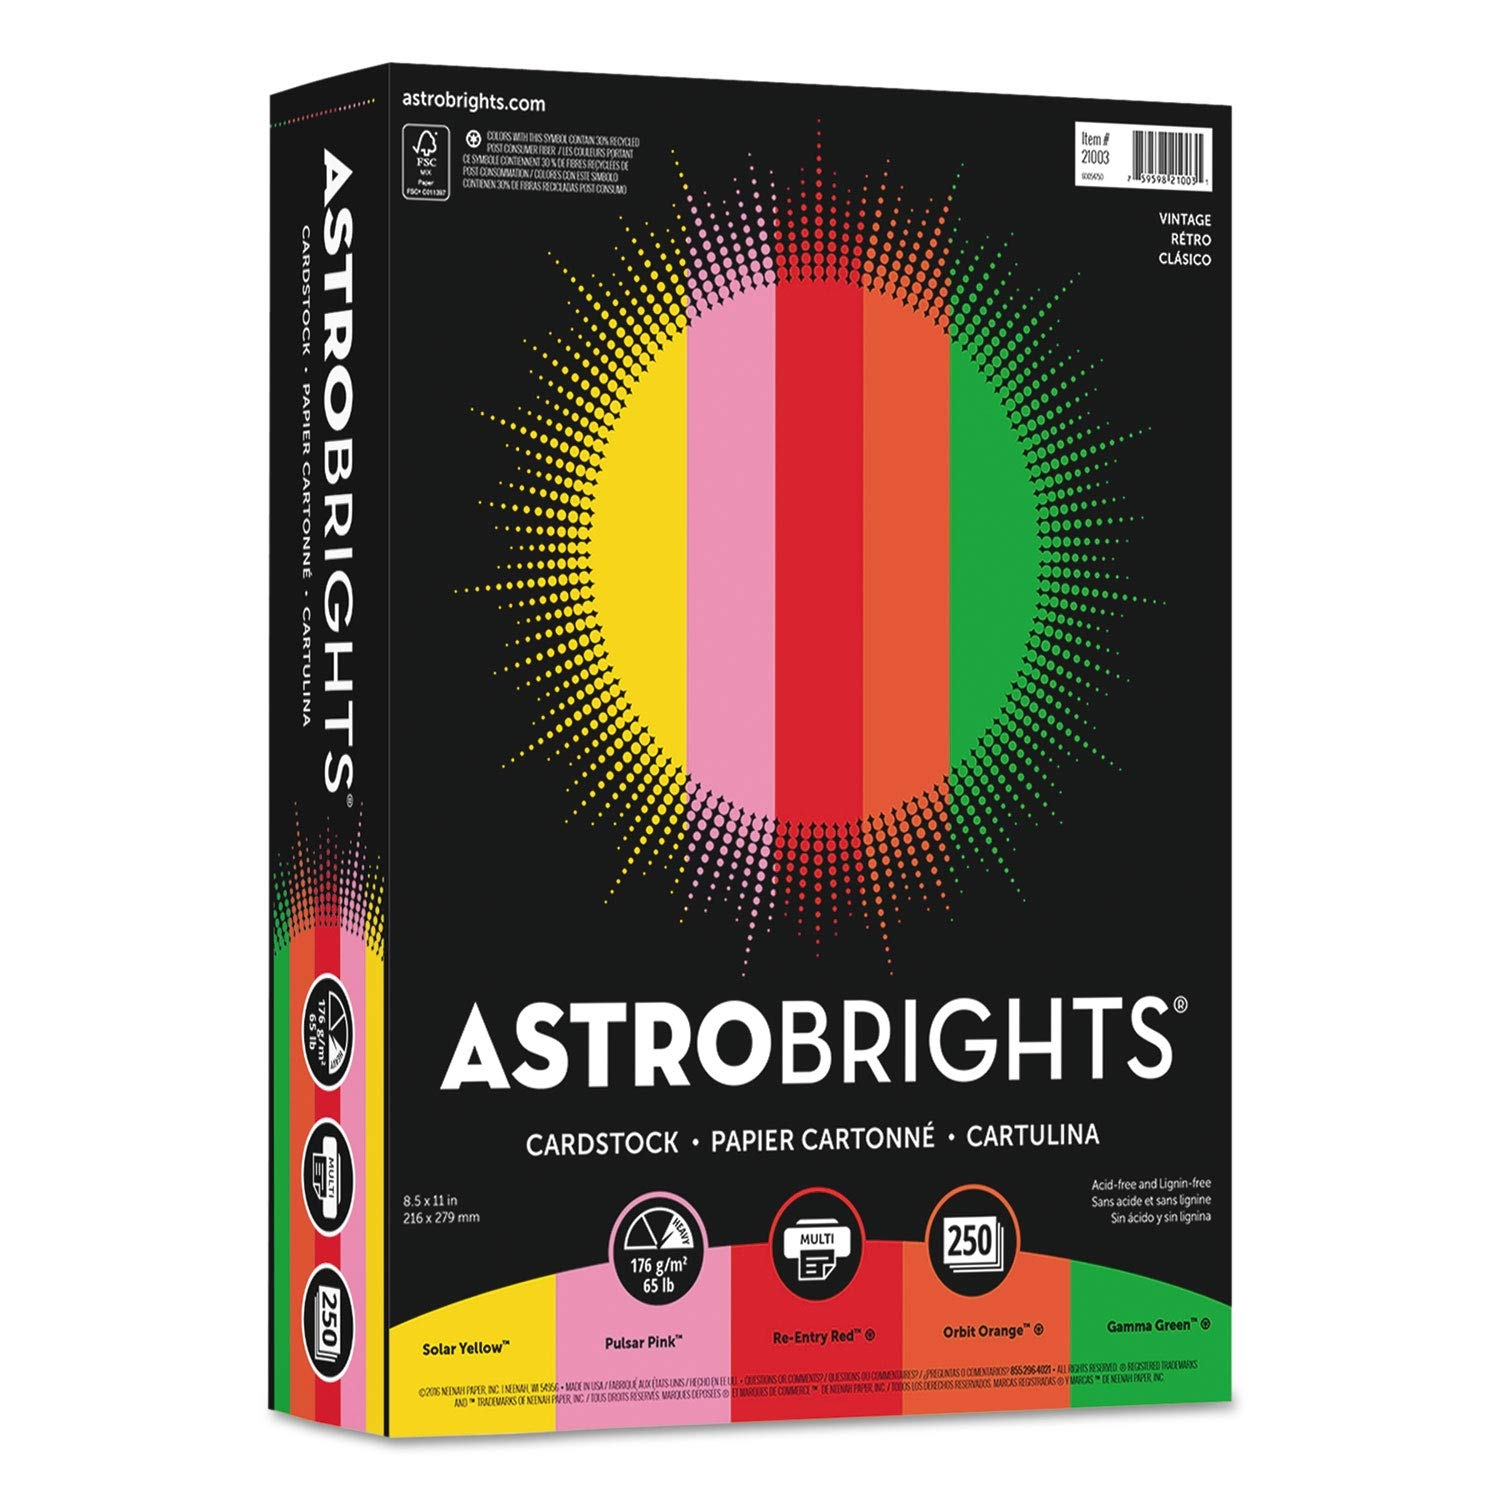 Astrobrights Color Cardstock, 65lb, 8 1/2 x 11, Assorted, 250 Sheets - 21003, (Pack of 2)